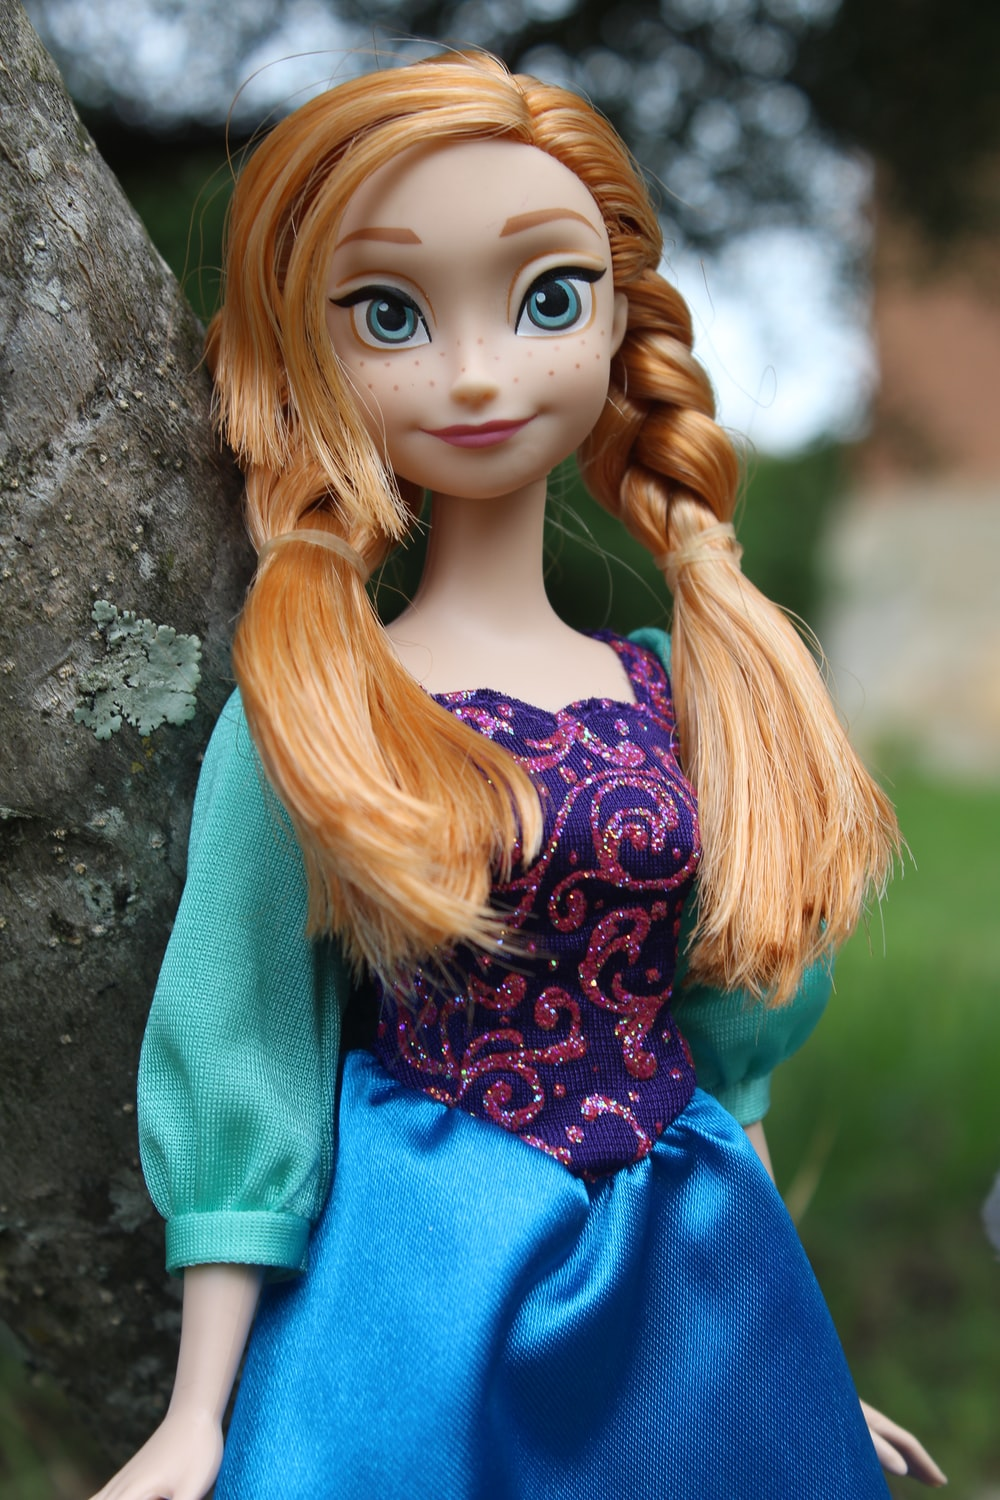 100 doll pictures download free images on unsplash 100 doll pictures download free